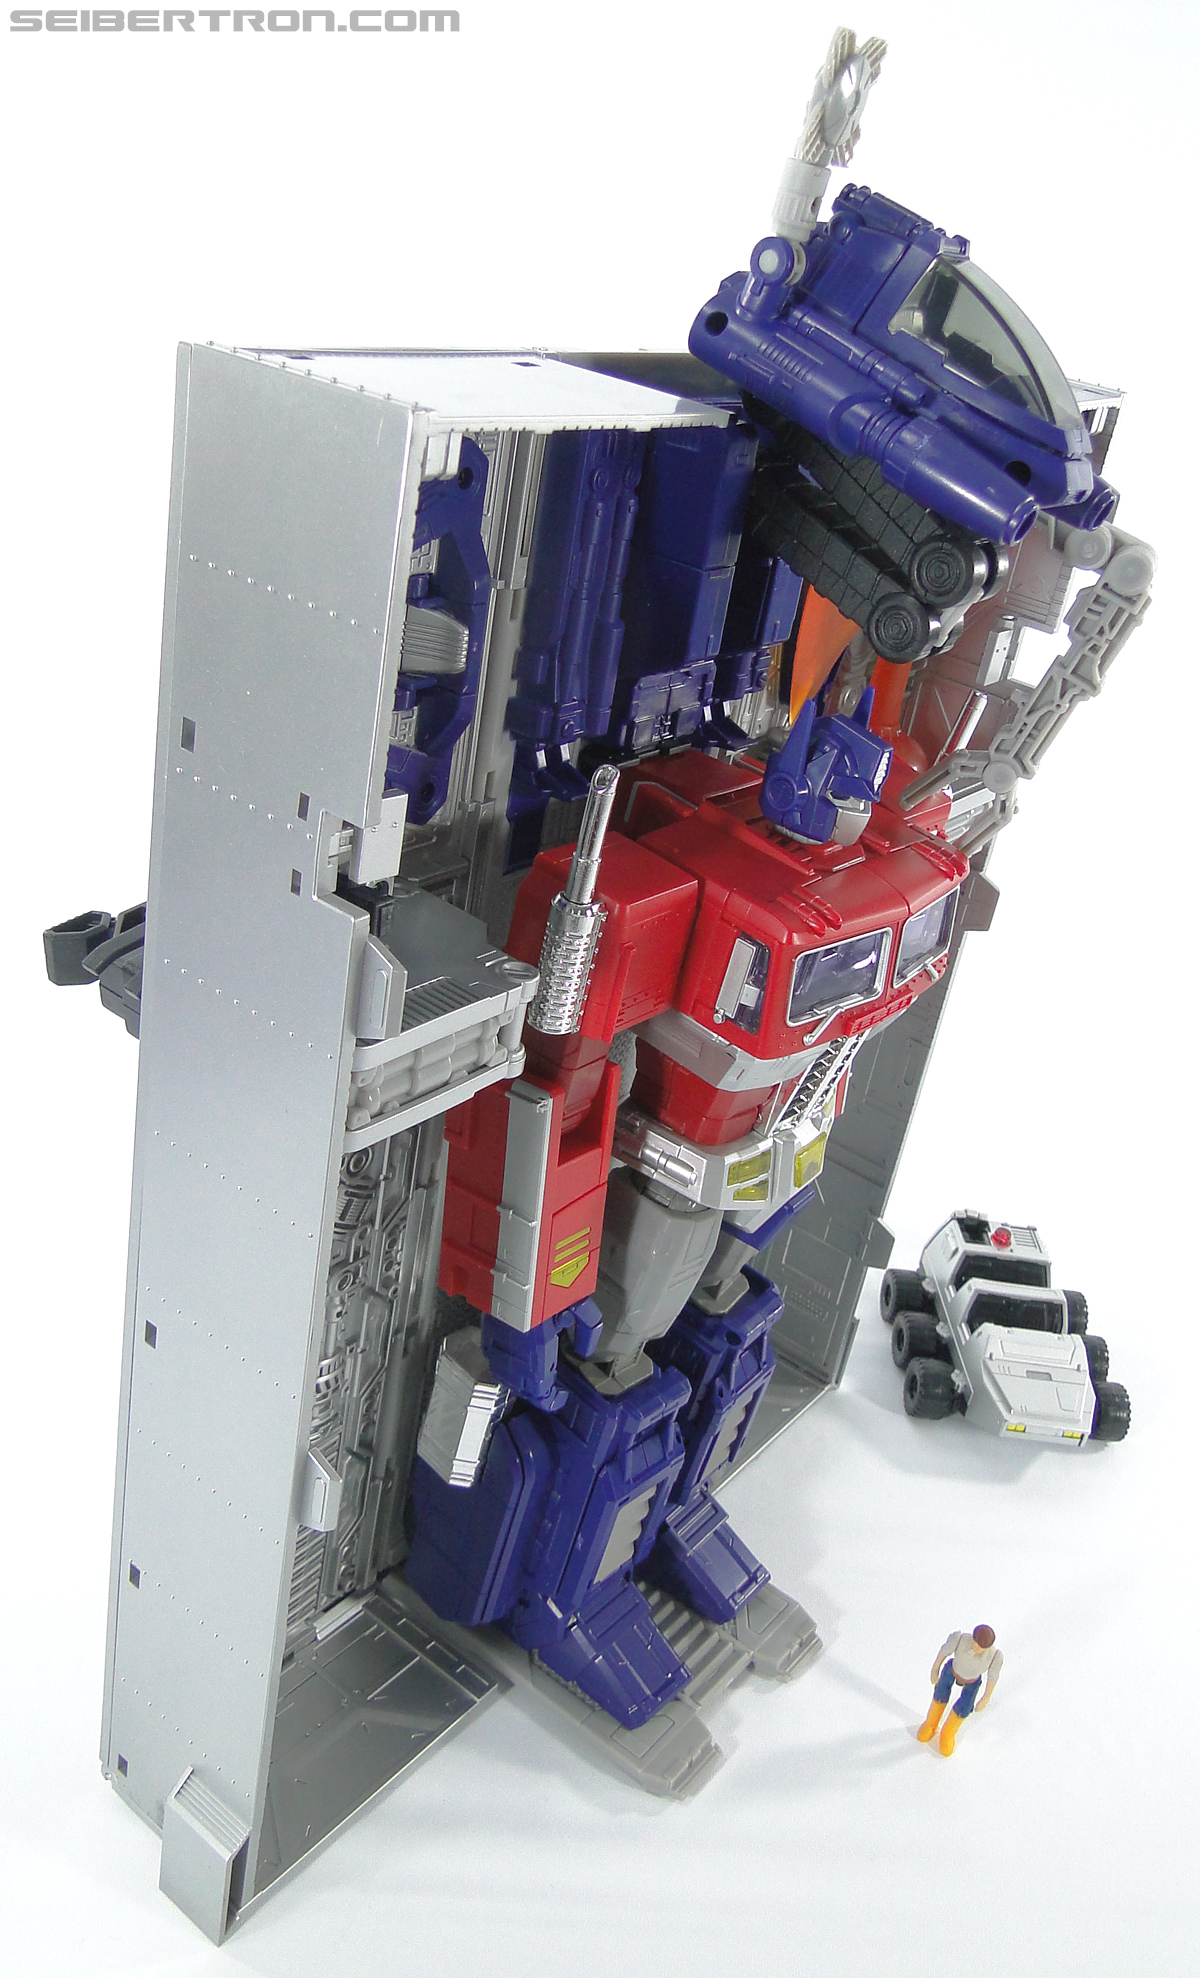 Transformers Masterpiece Optimus Prime (MP-10) (Convoy) (Image #382 of 429)